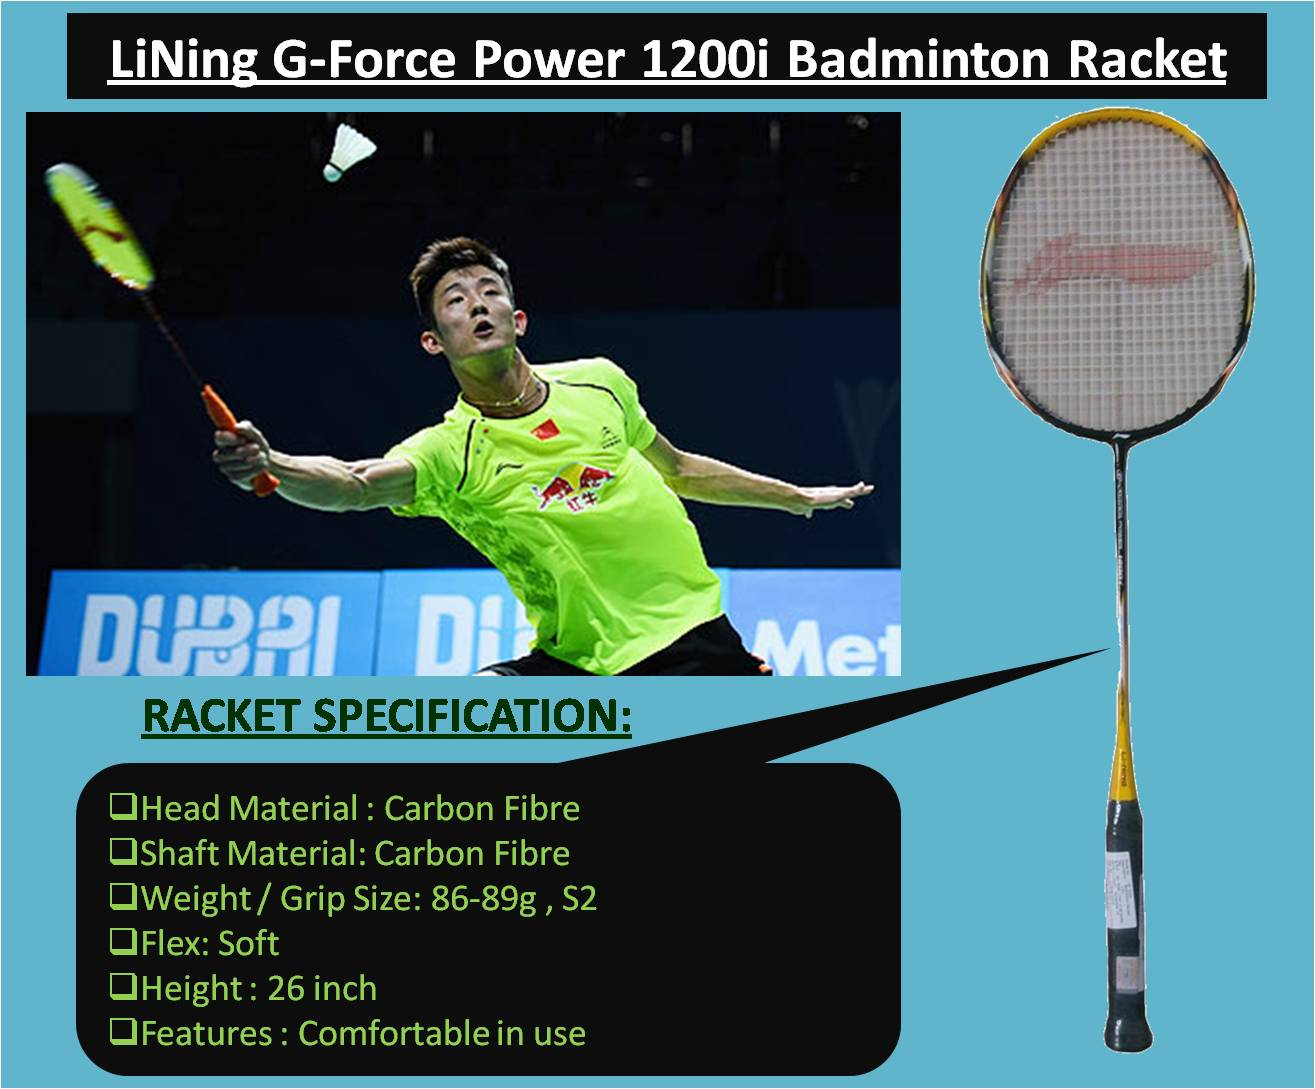 LiNing G-Force Power 1200i Badminton Racket